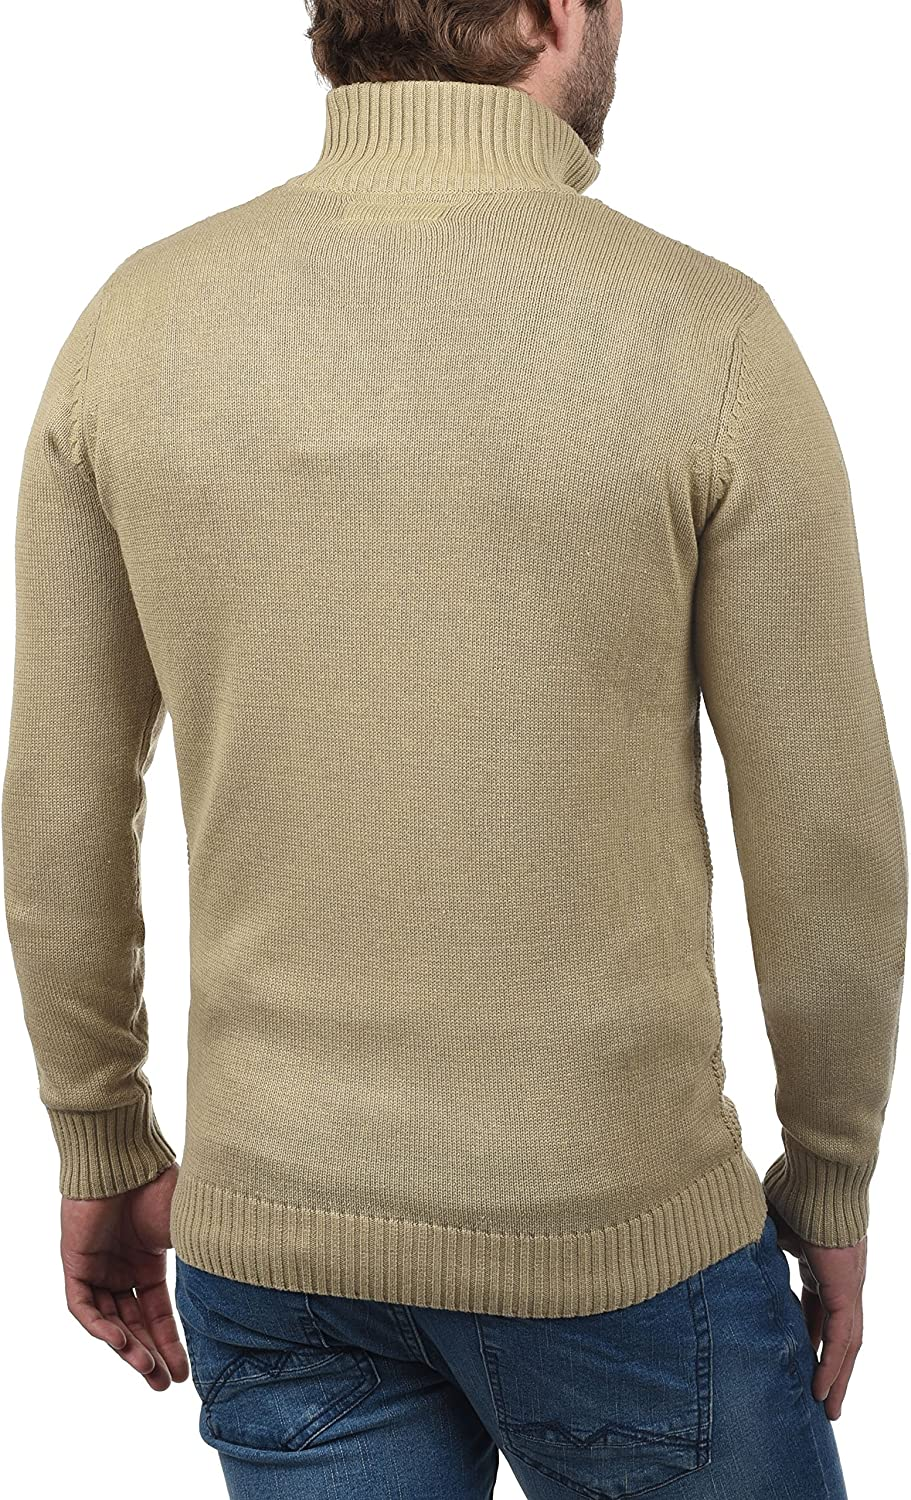 Solid Tristian Mens Cardigan Knit Jacket with Funnel Neck with Zipper